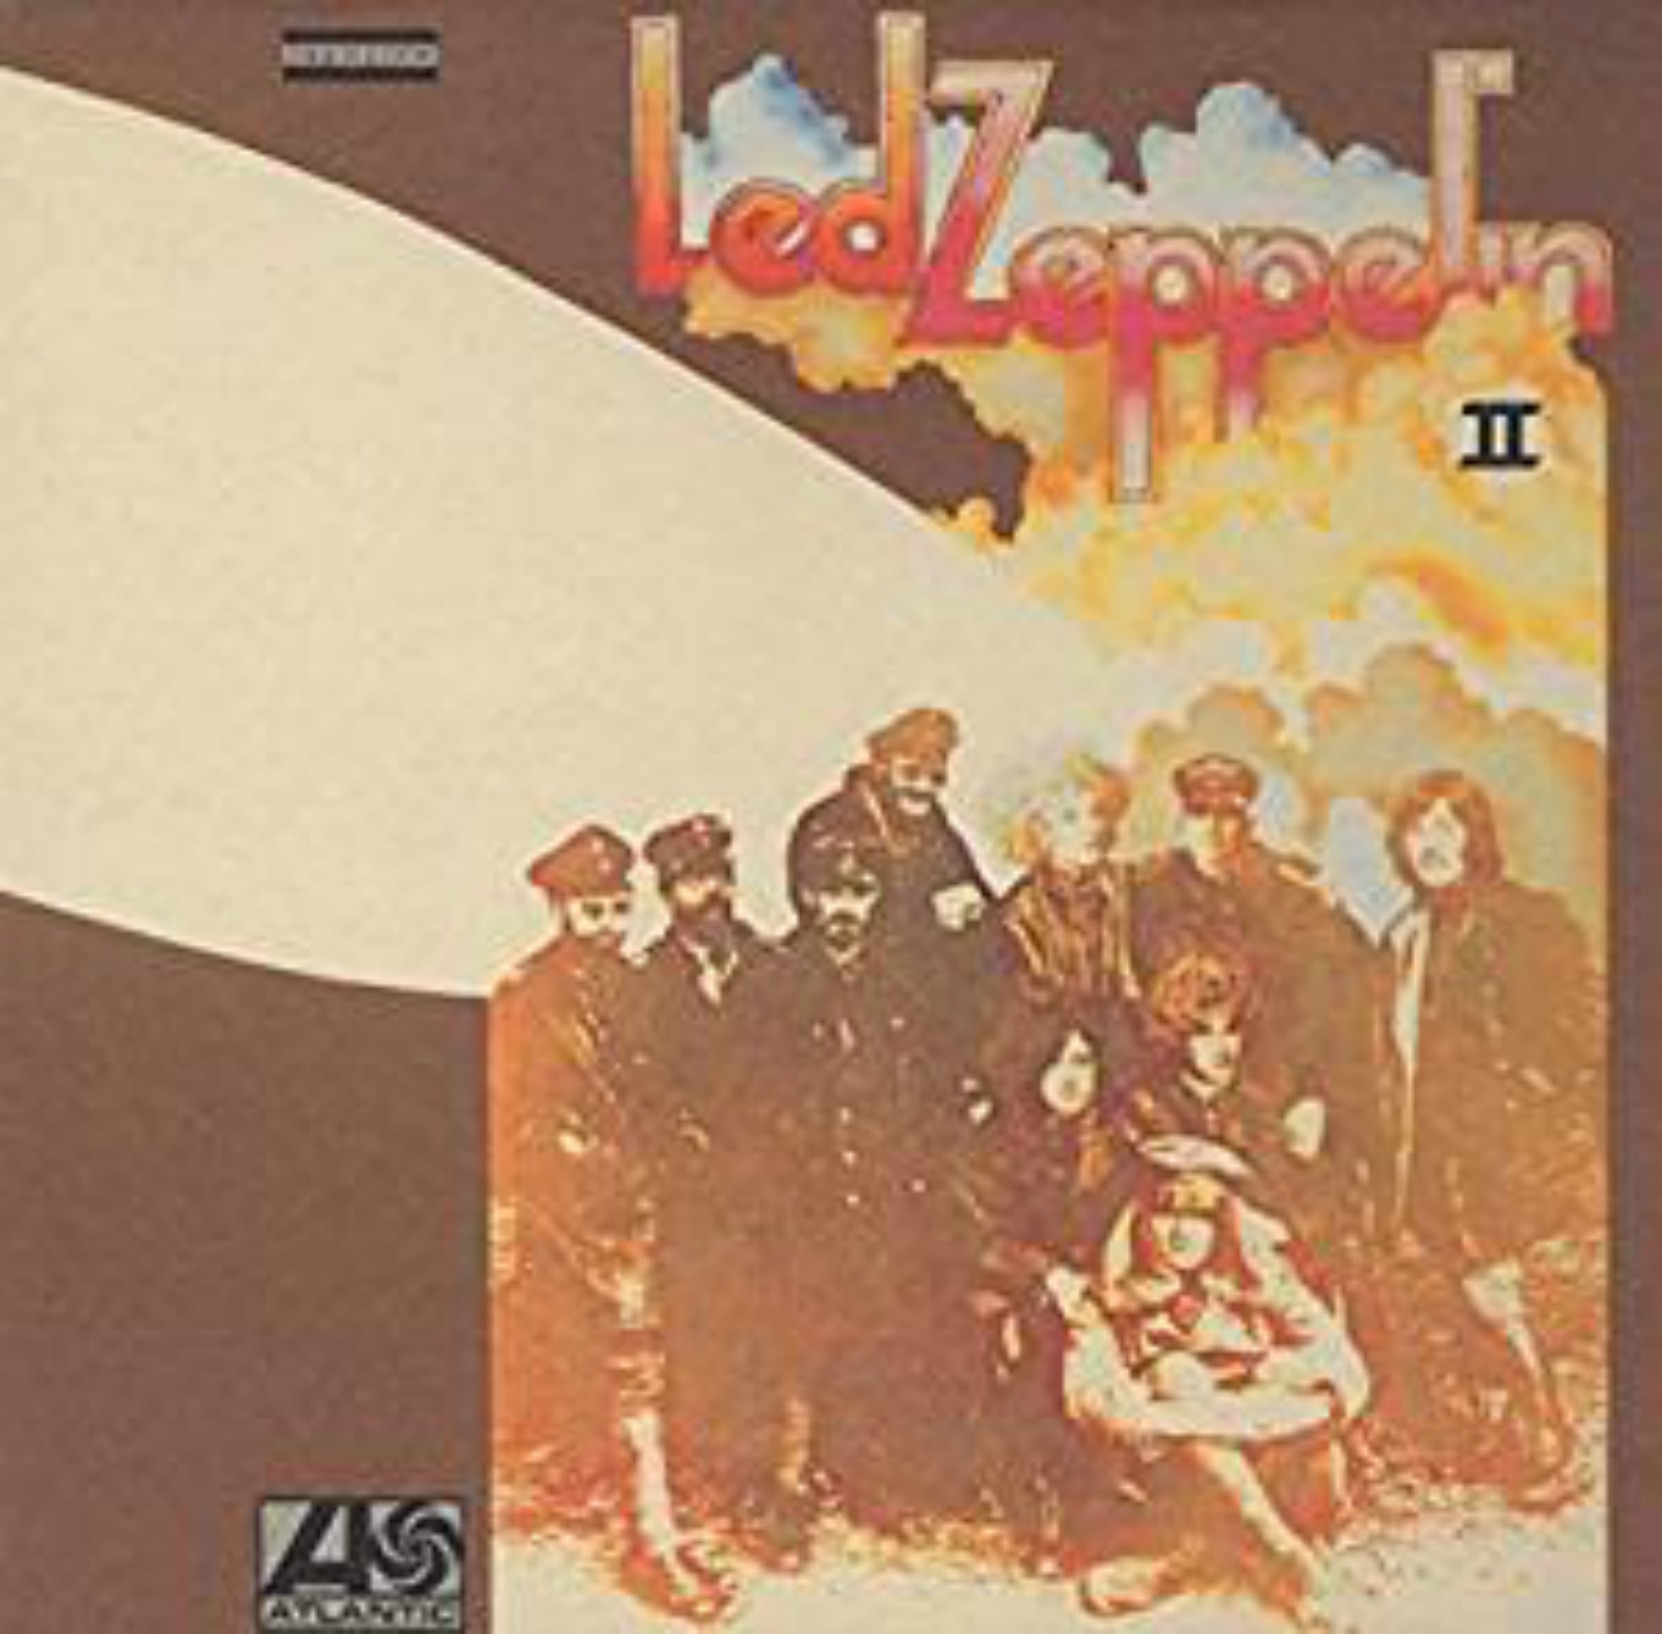 Album cover - Led Zeppelin II, released 1969